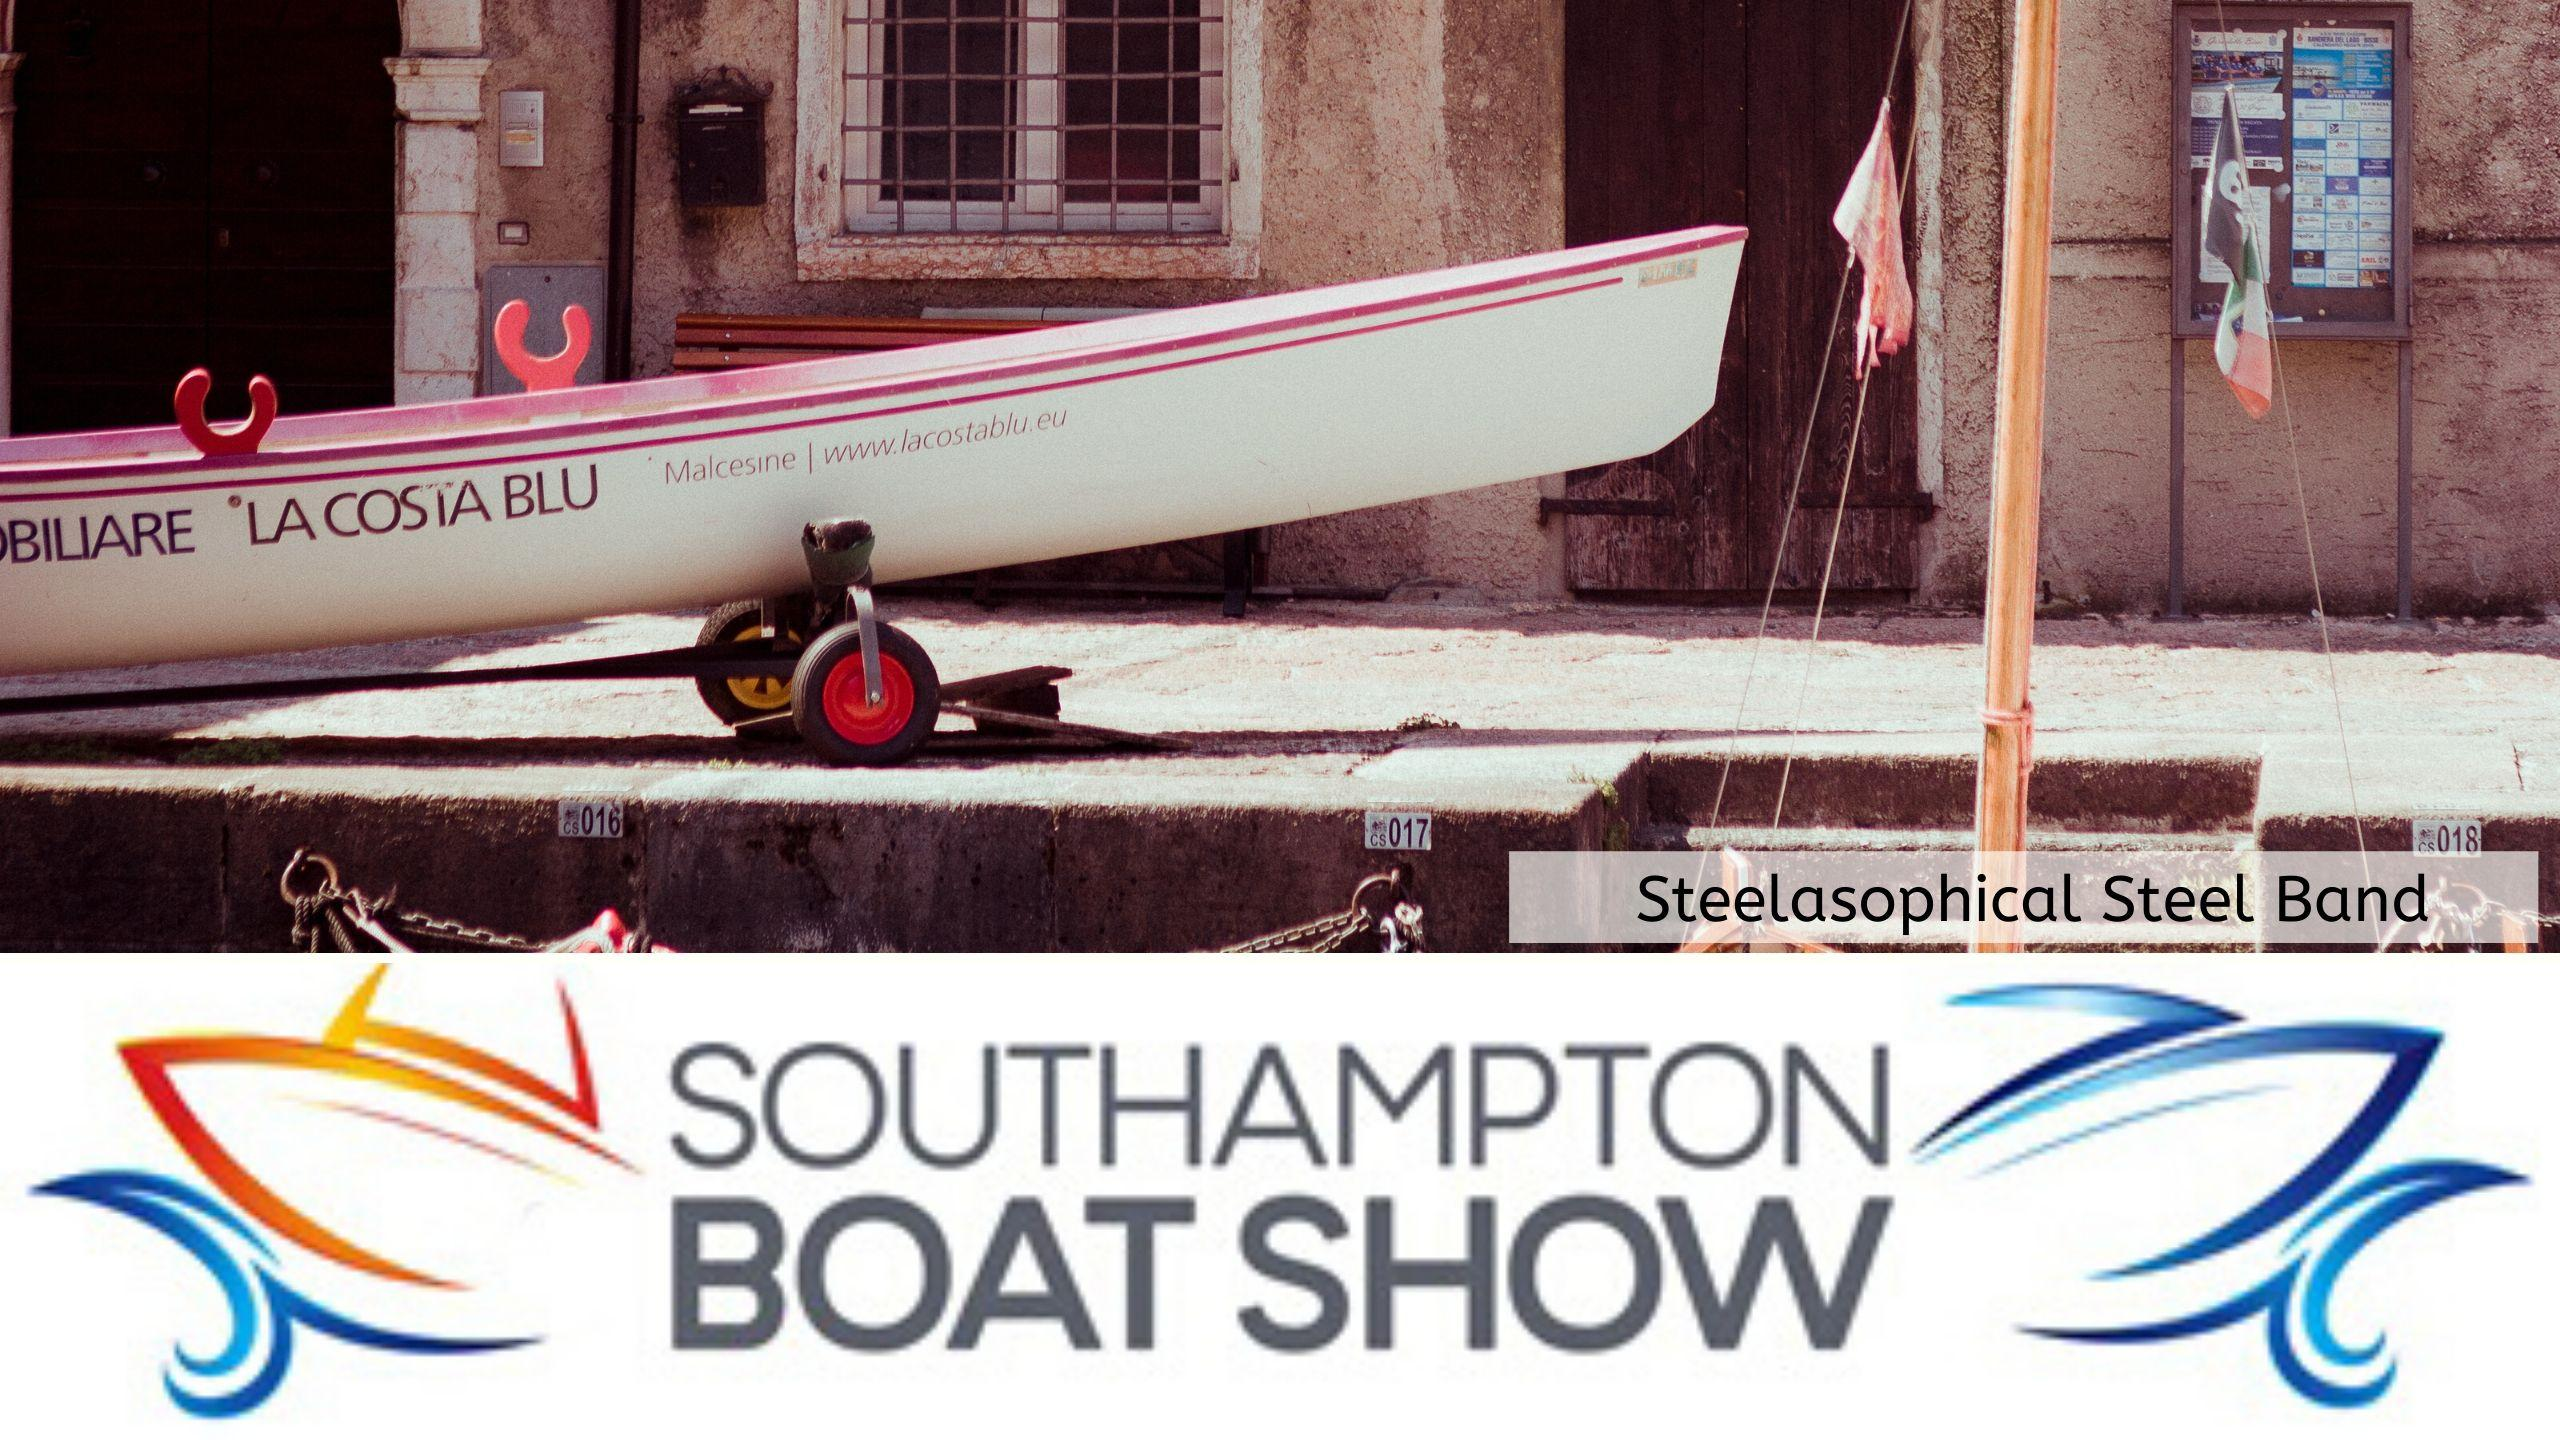 Steelasophical Steel Band Southampton Boat Show Yacht Market swdefr